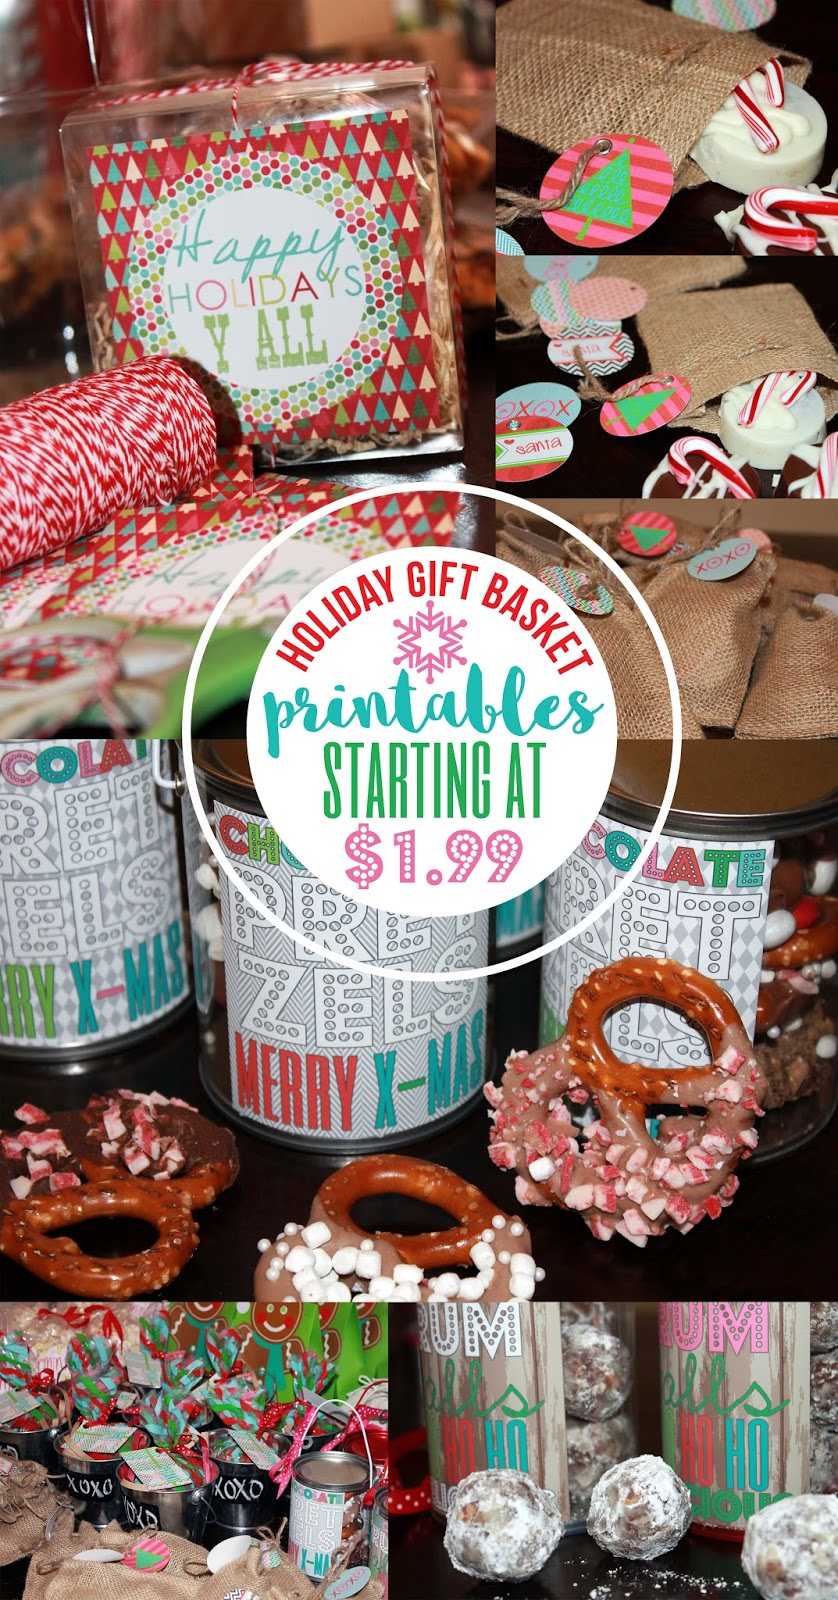 http://www.partyboxdesign.com/category_115/DIY-Holiday-Printables.htm